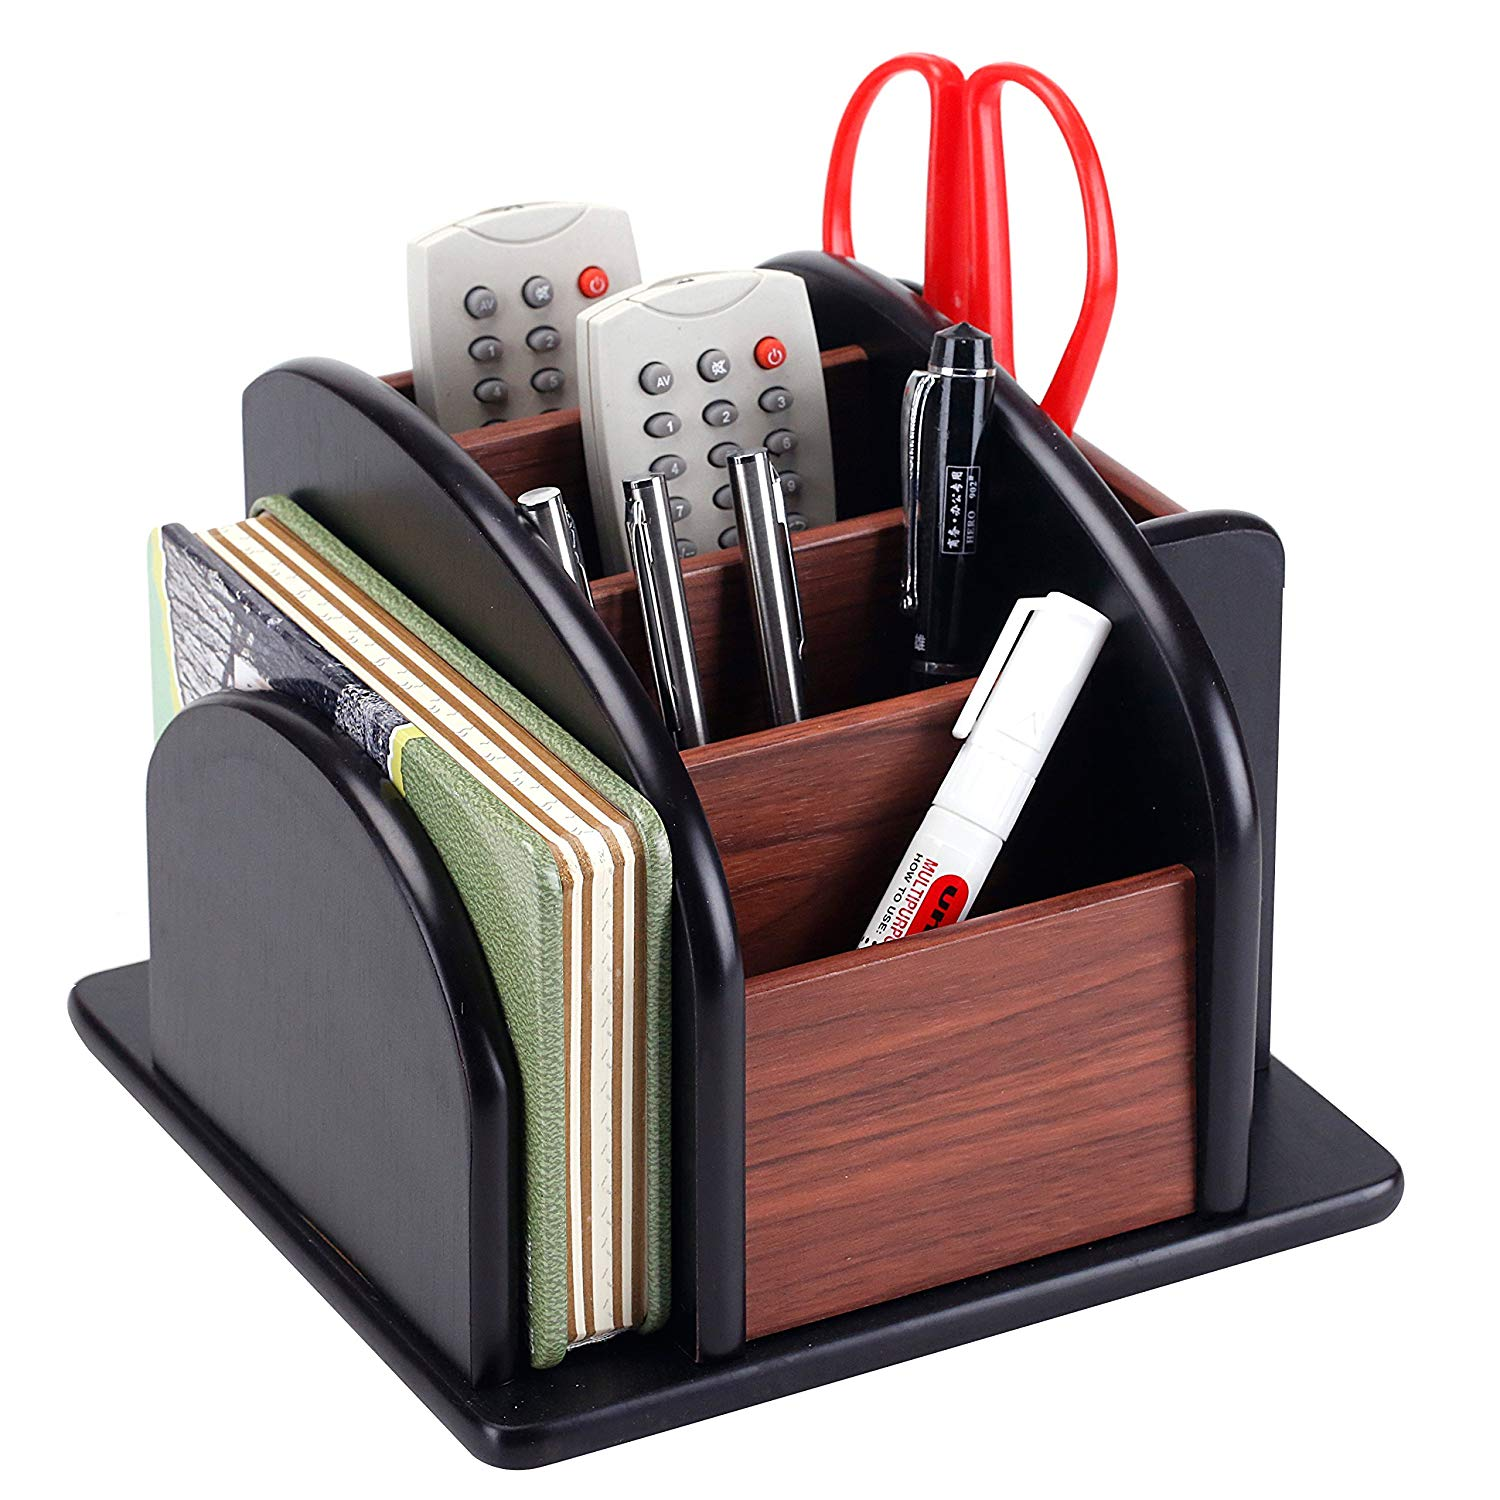 6-Compartment Wood Rotating Remote Caddy/Desktop Office Supply Organizer Holder - Living room